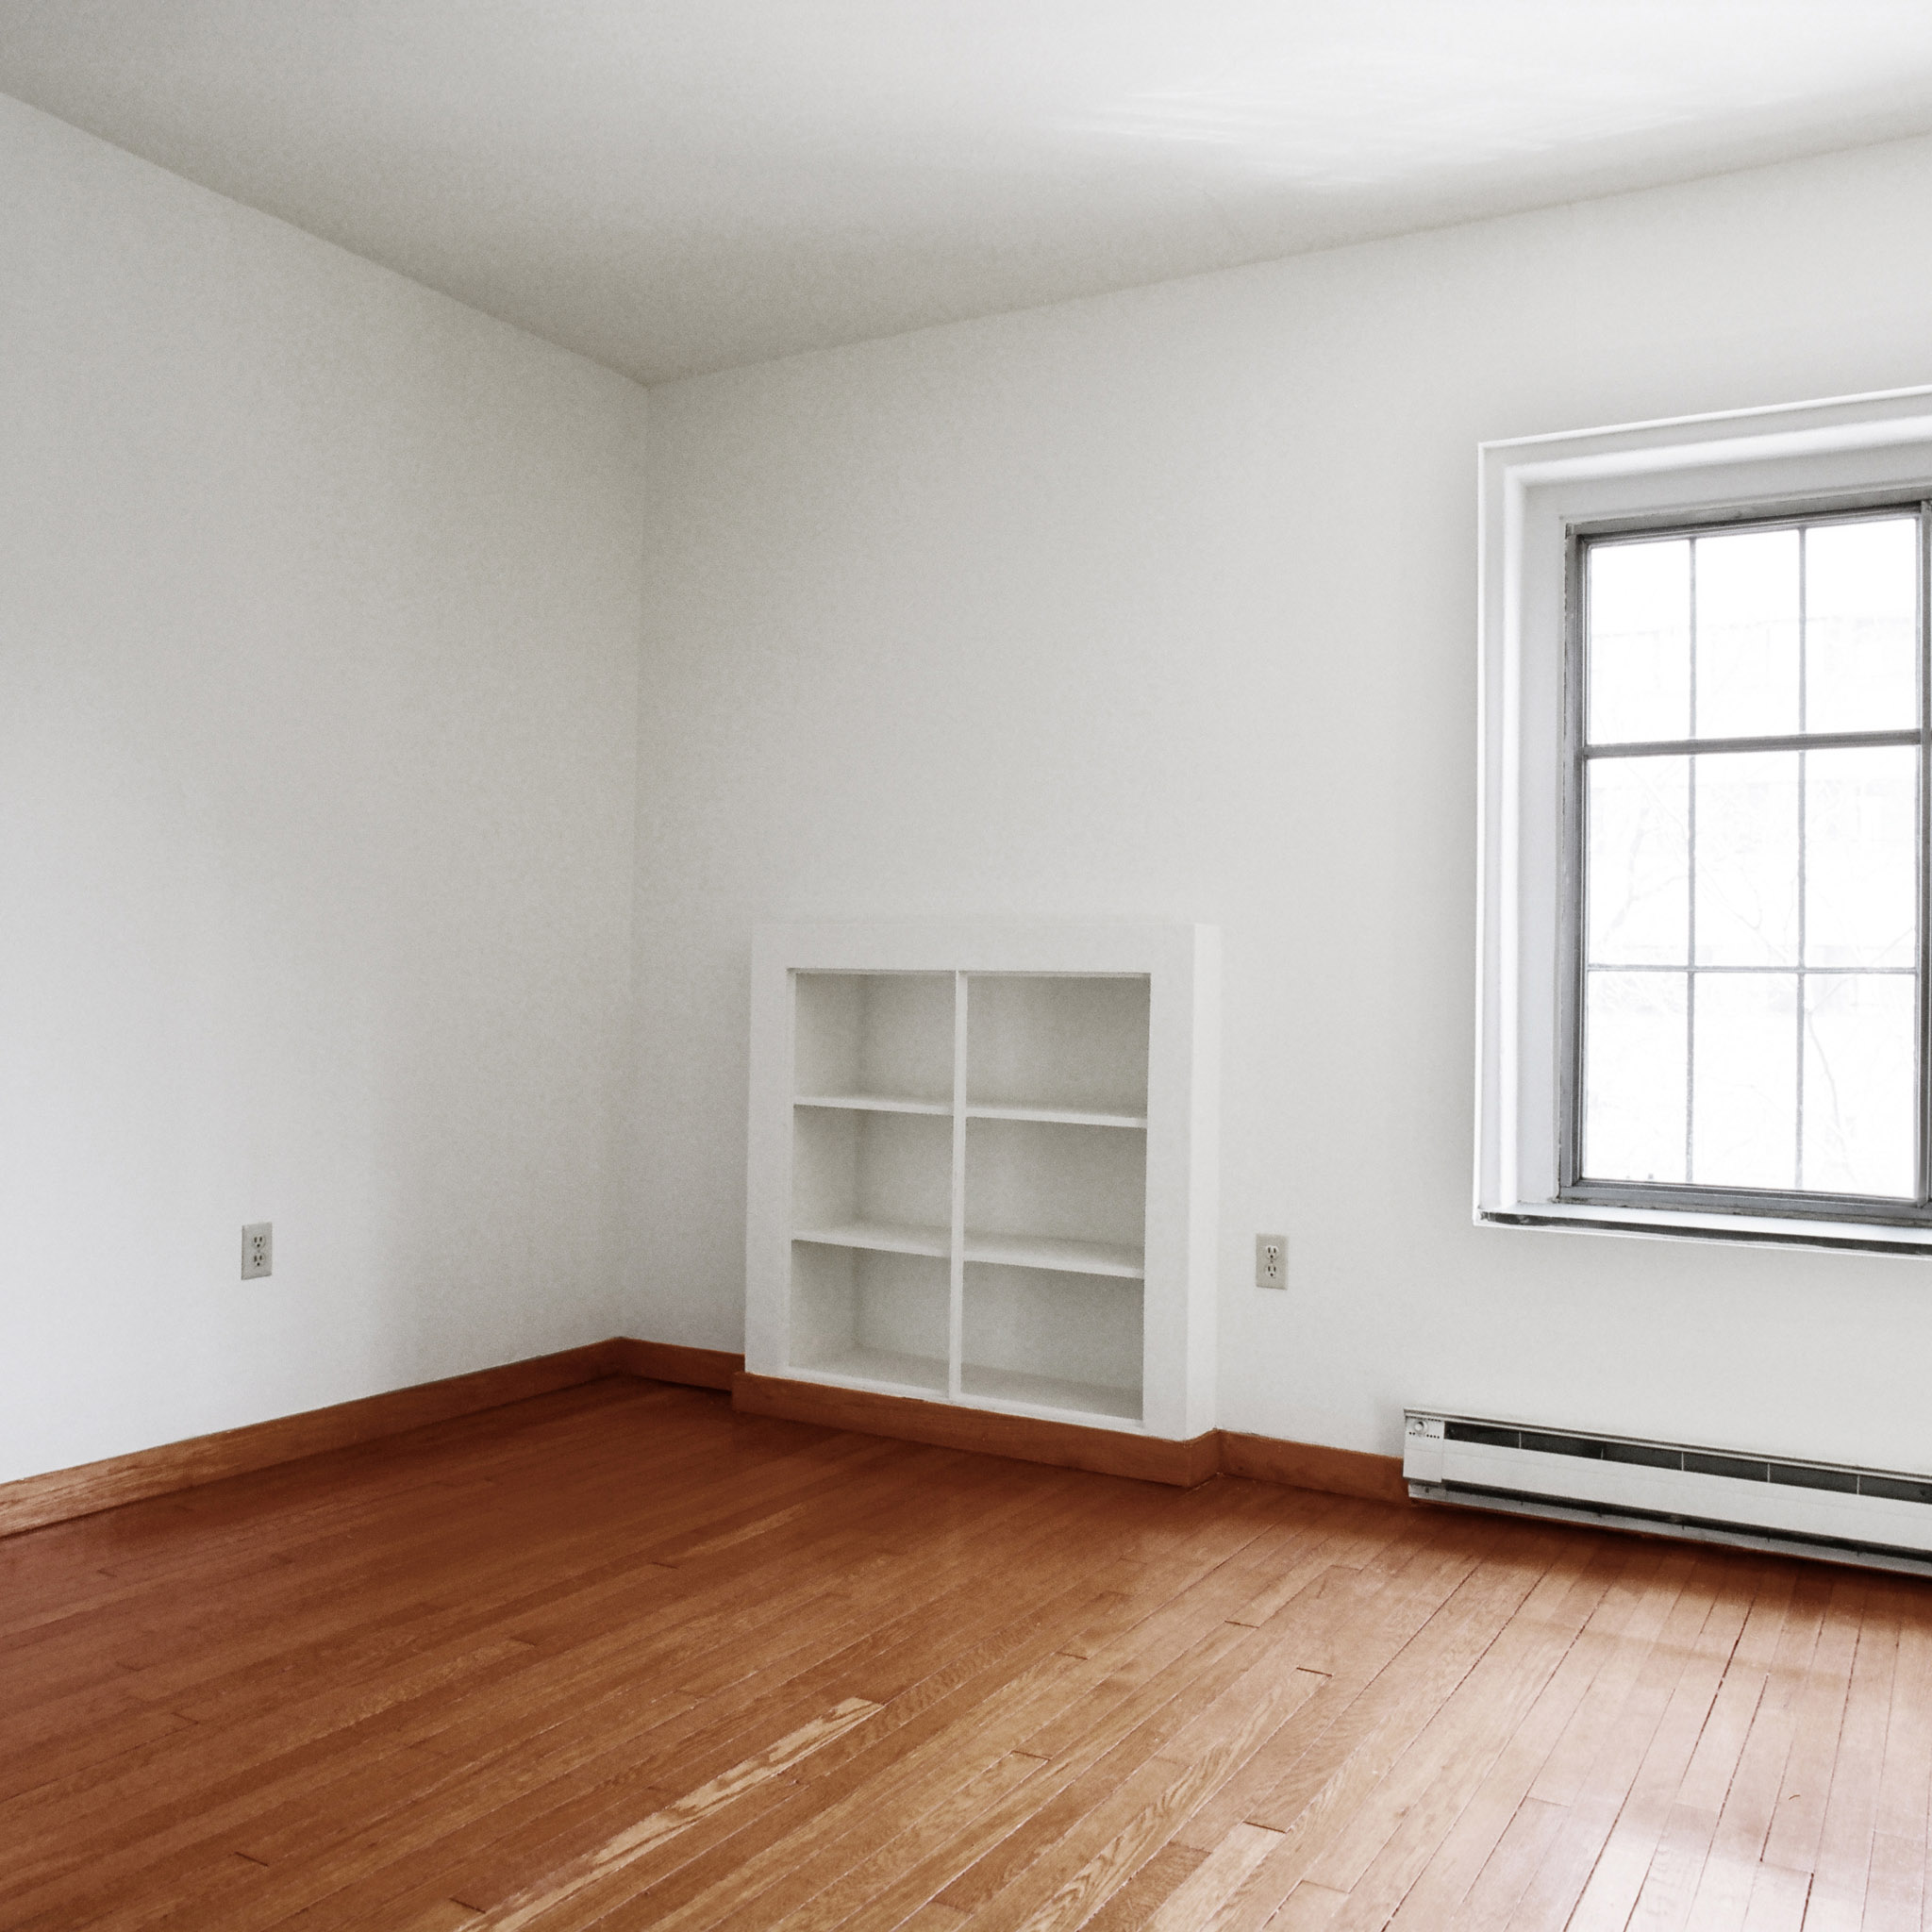 interior of 340 S. Highland Ave, Apt. 5A 5